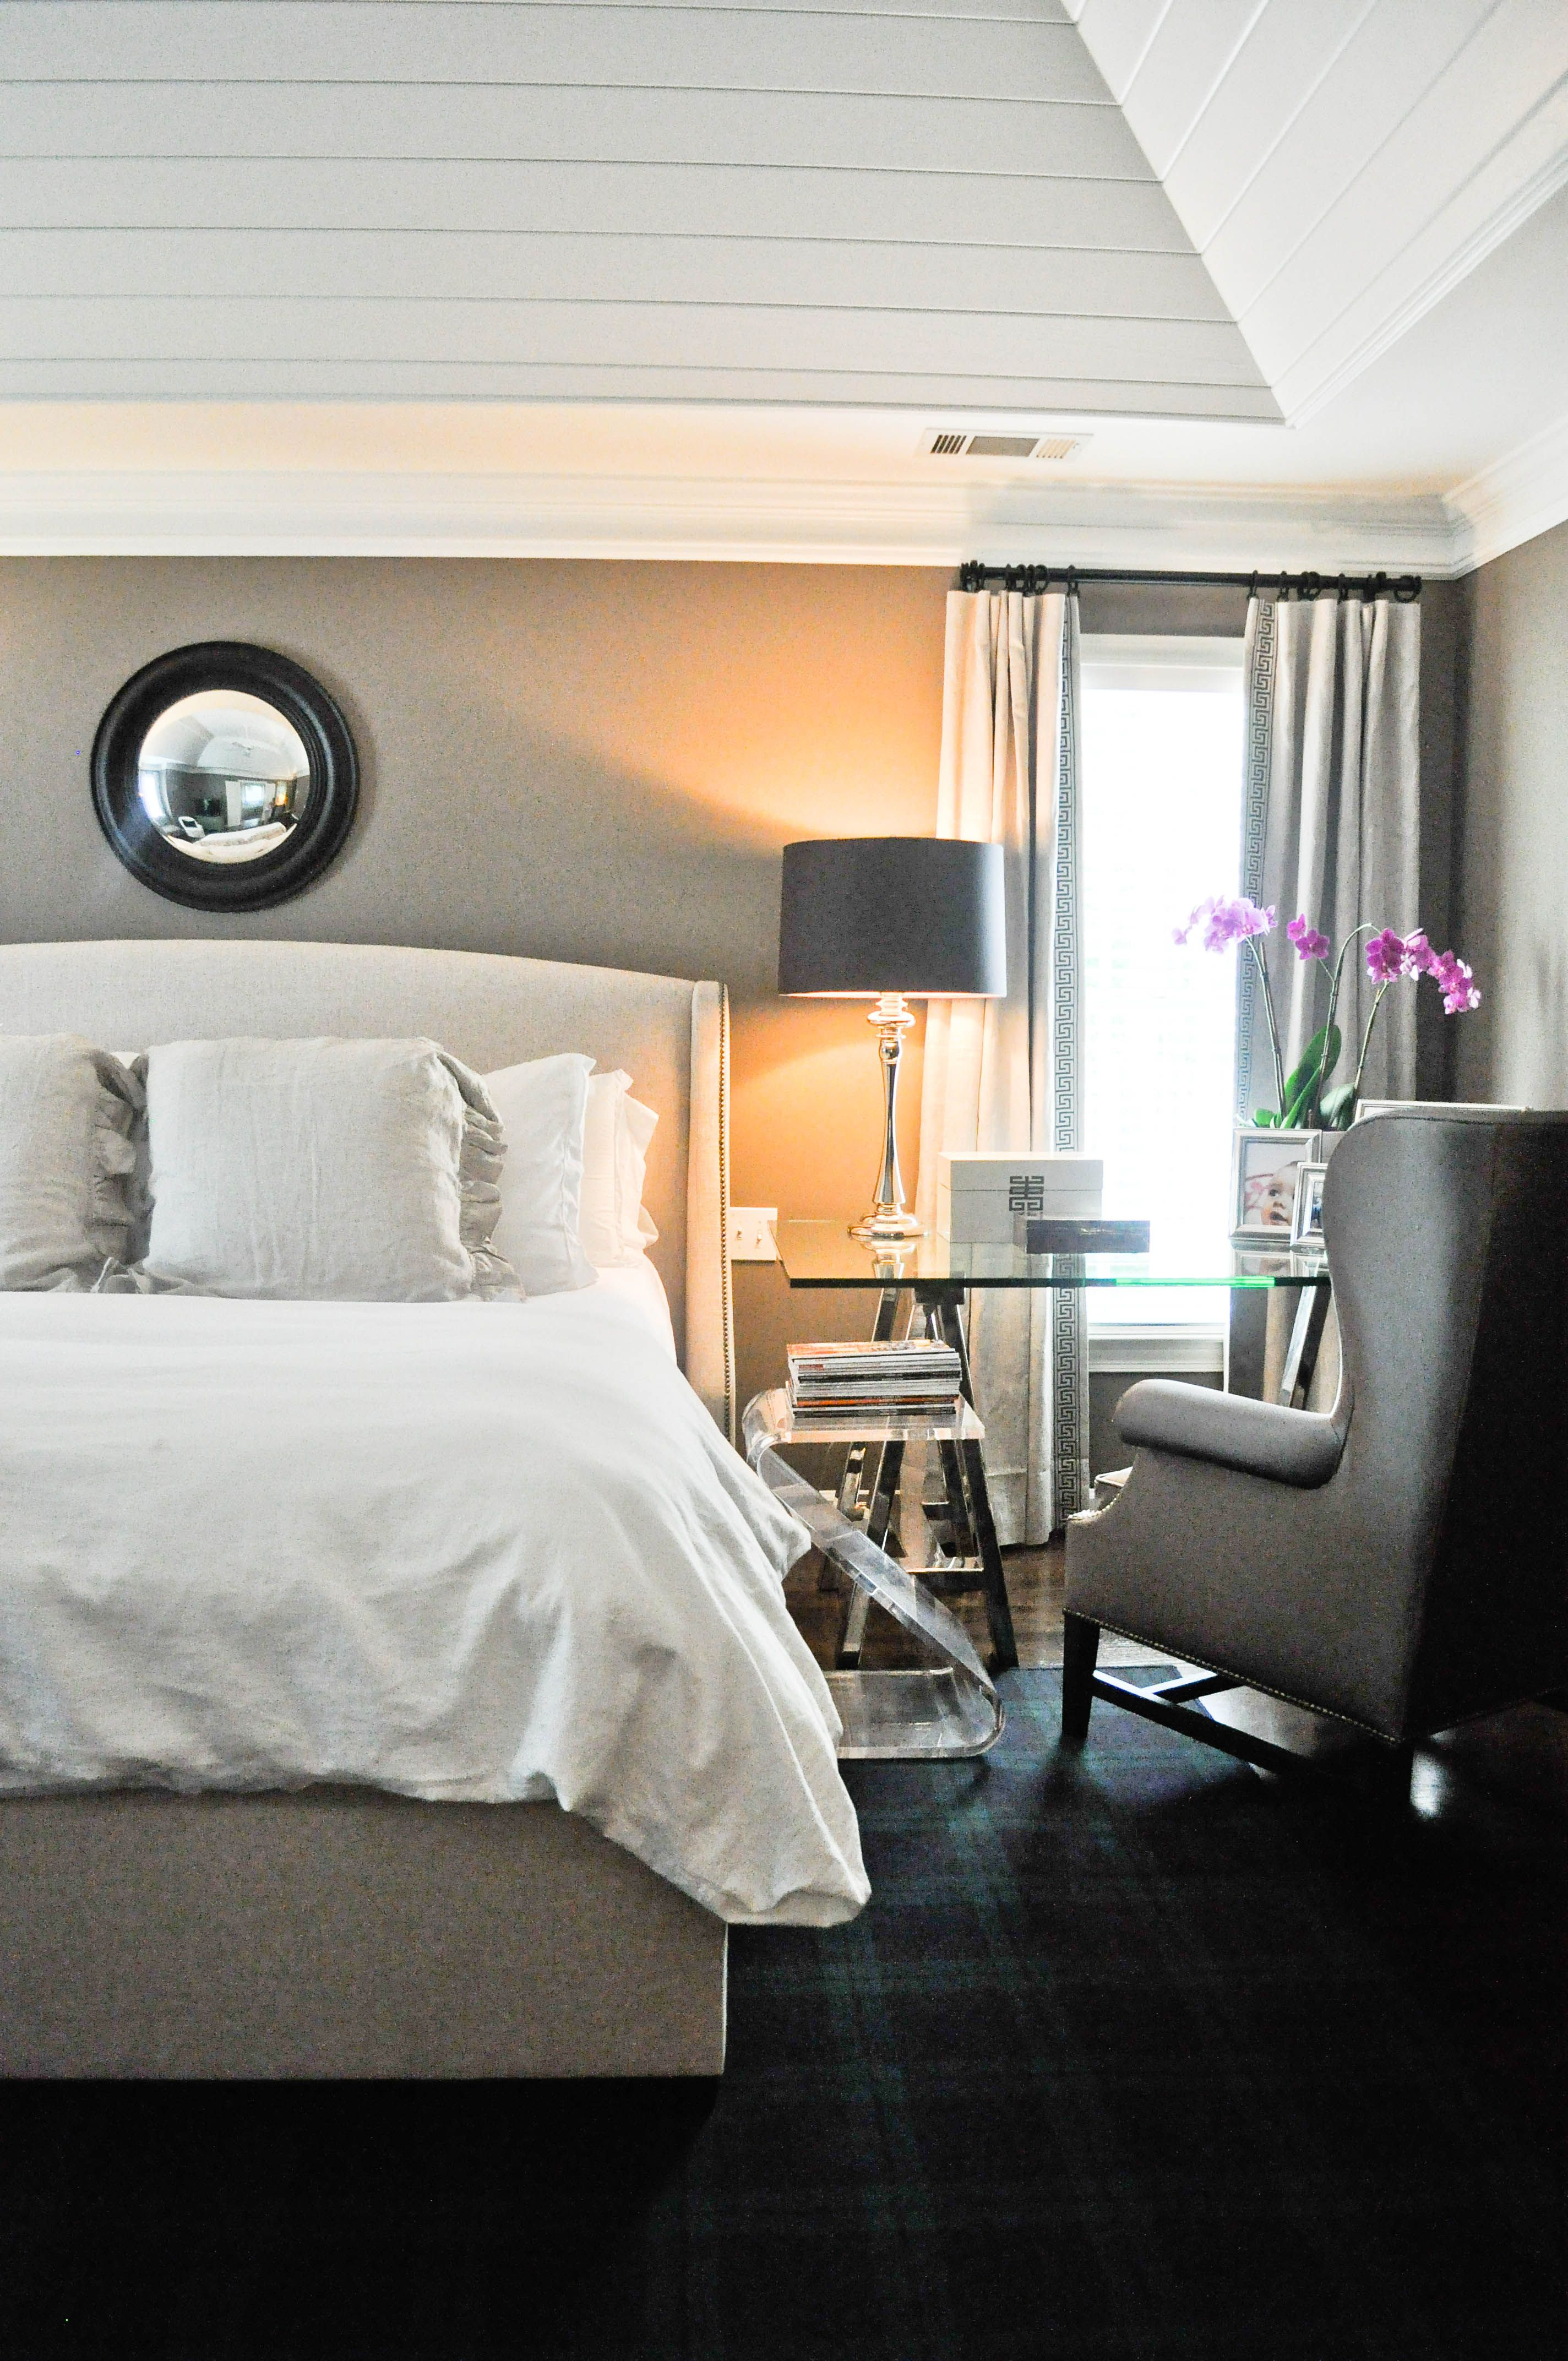 Sunday Dreaming With Lots Of Gorgeous Rooms Of Every Style South Shore Decorating Blog Luxury Hotel Room Bedroom Interior Home